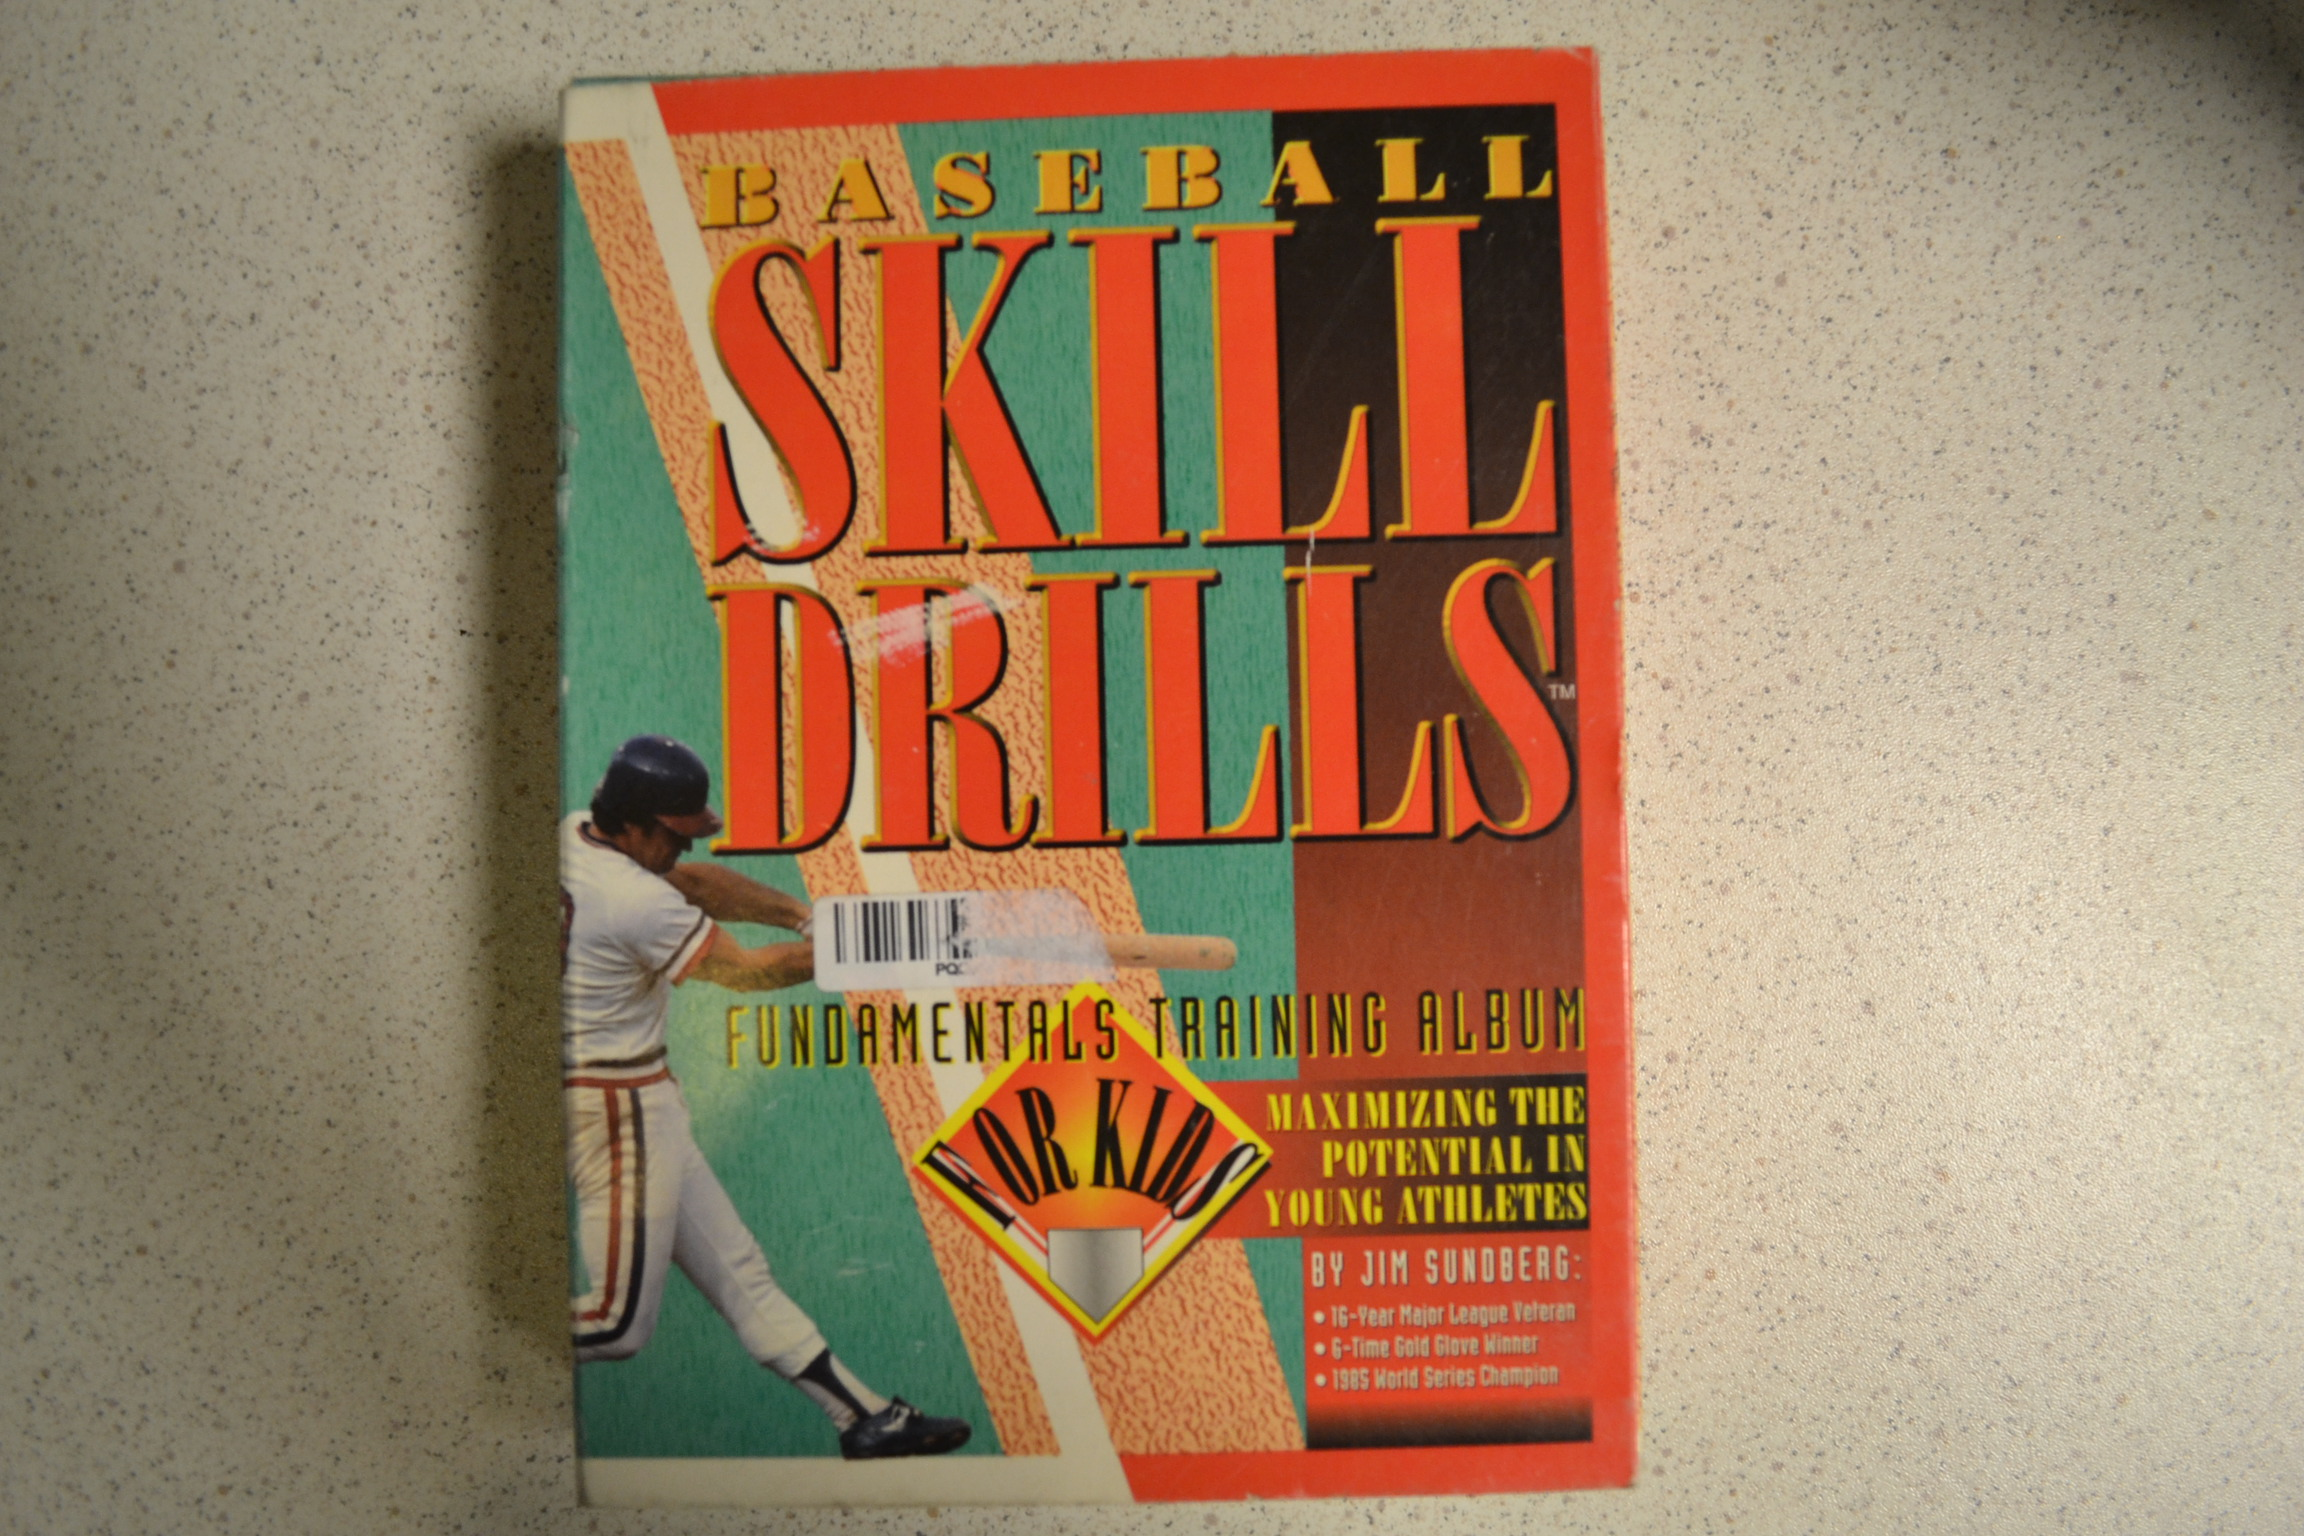 Baseball Skill Drills Video For Kids Video Tape On VHS